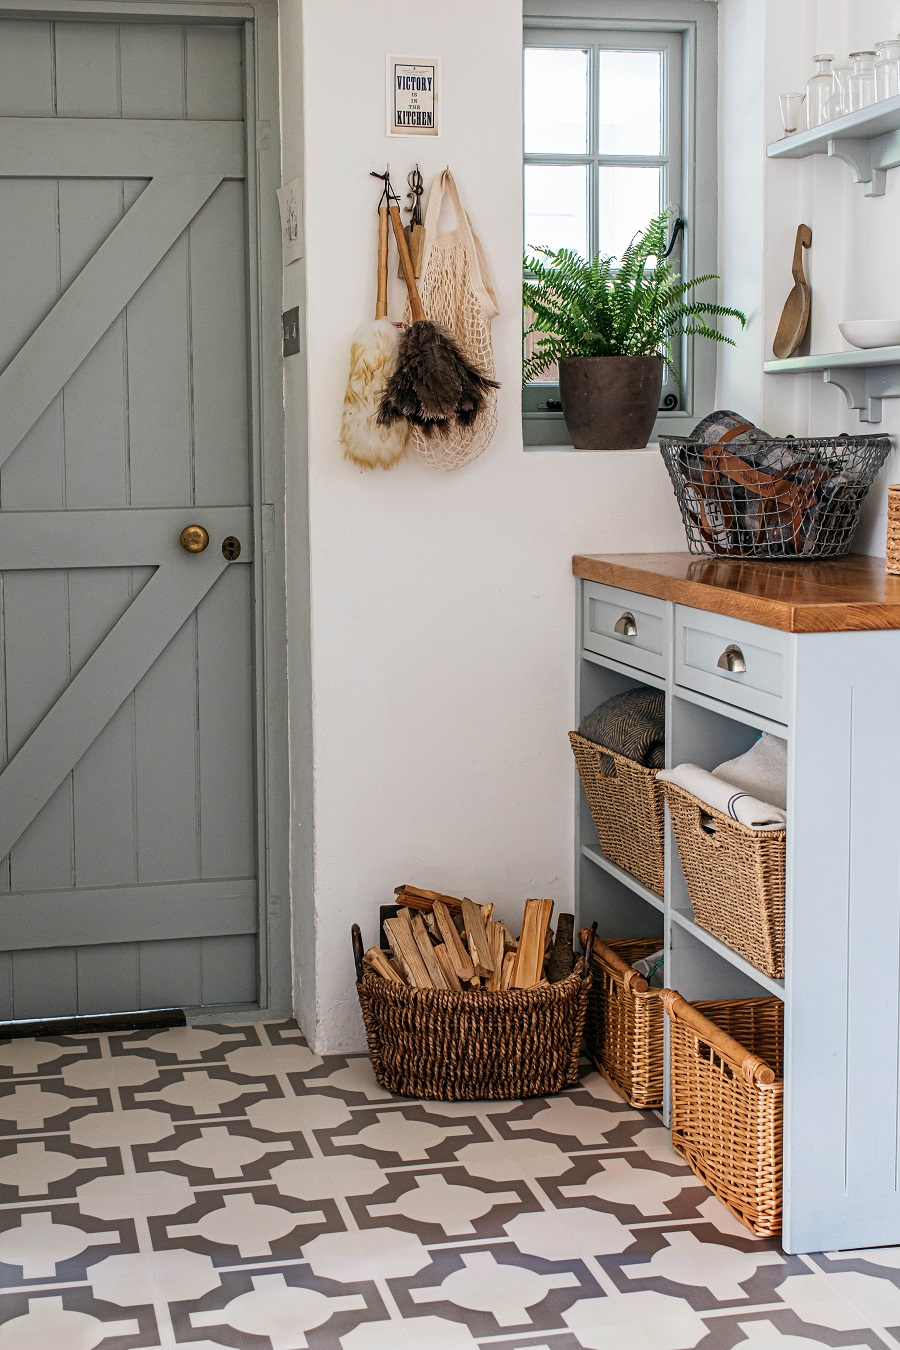 Utility Room Dreaming